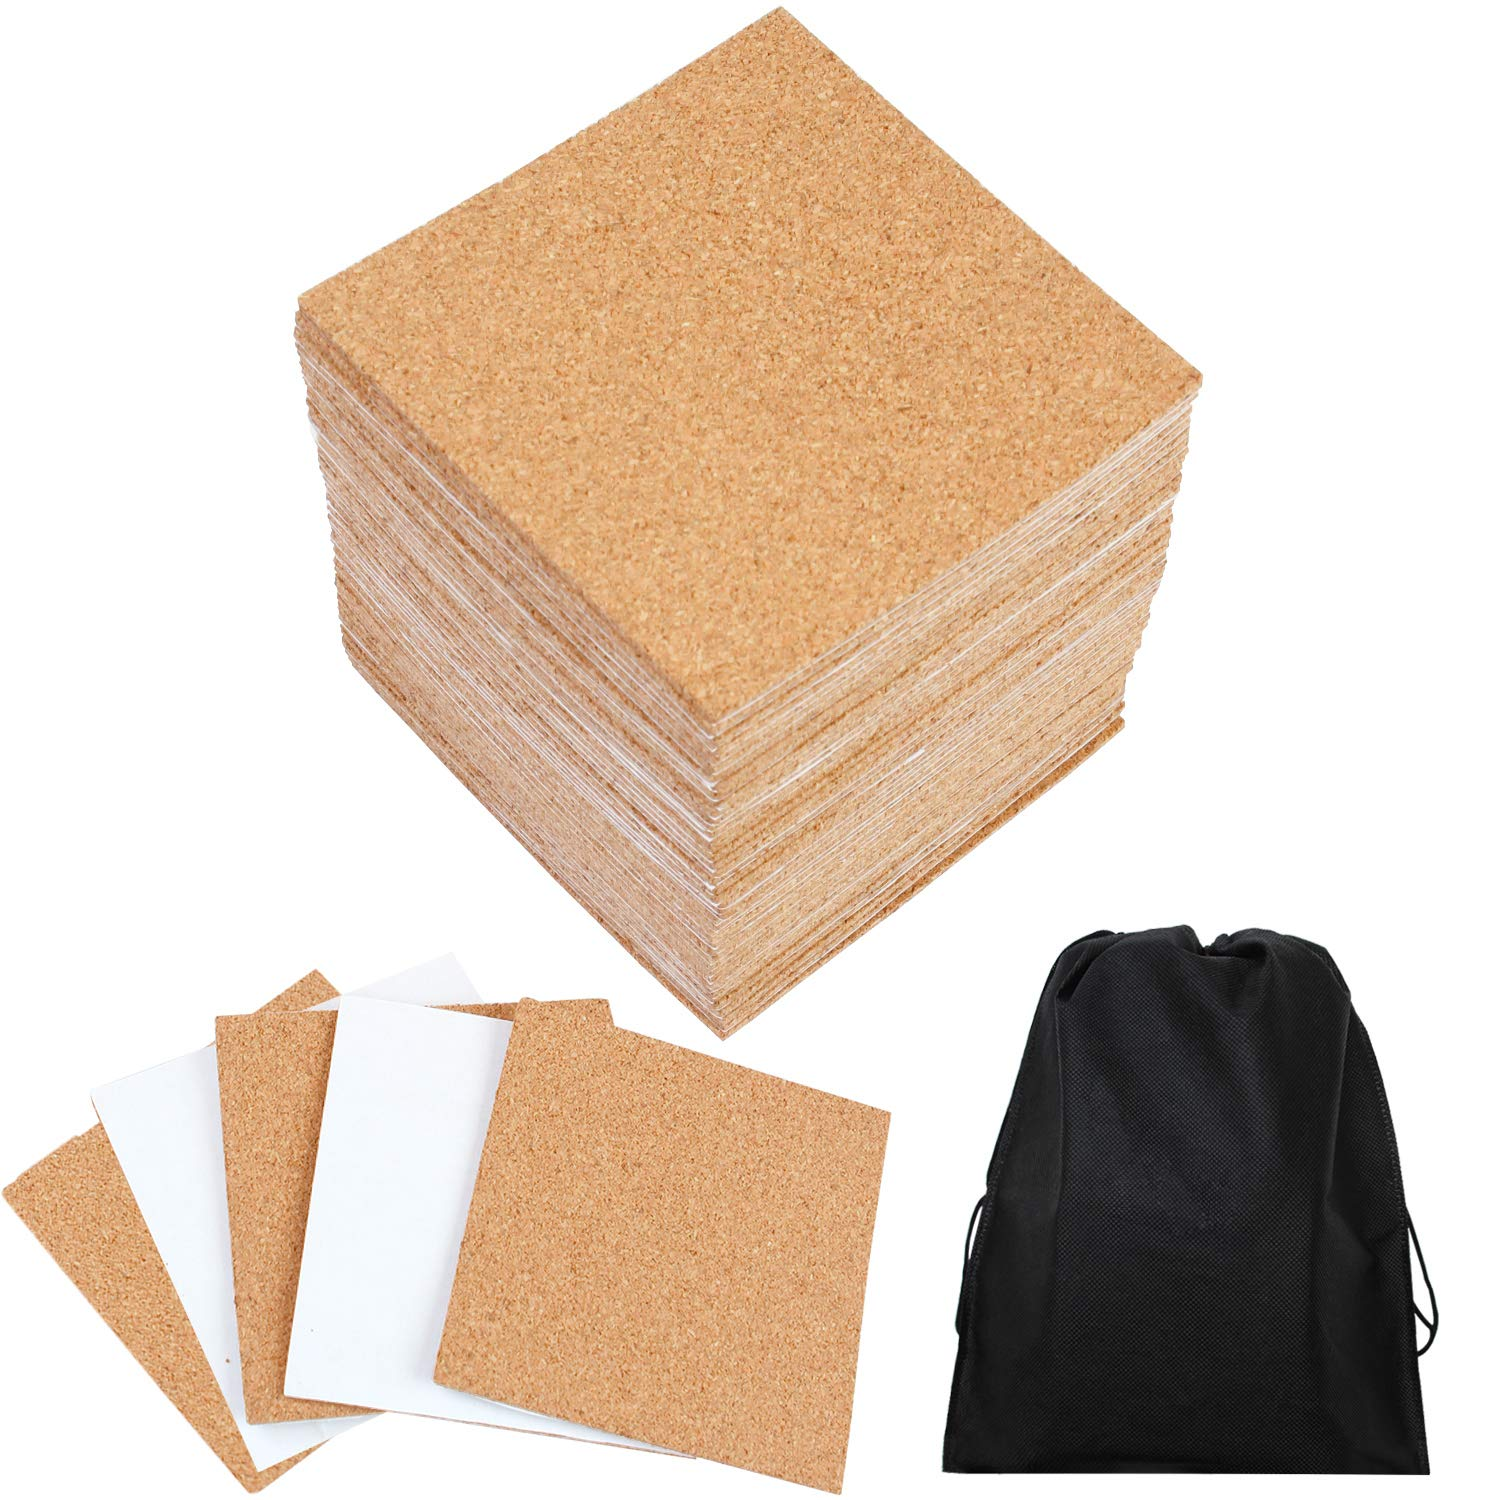 Resinta 50 Pack Self-Adhesive Cork Squares 4 x 4 Inch Cork Backing Sheets Mini Wall Cork Tiles with a Storage Bag for Coasters and DIY Crafts